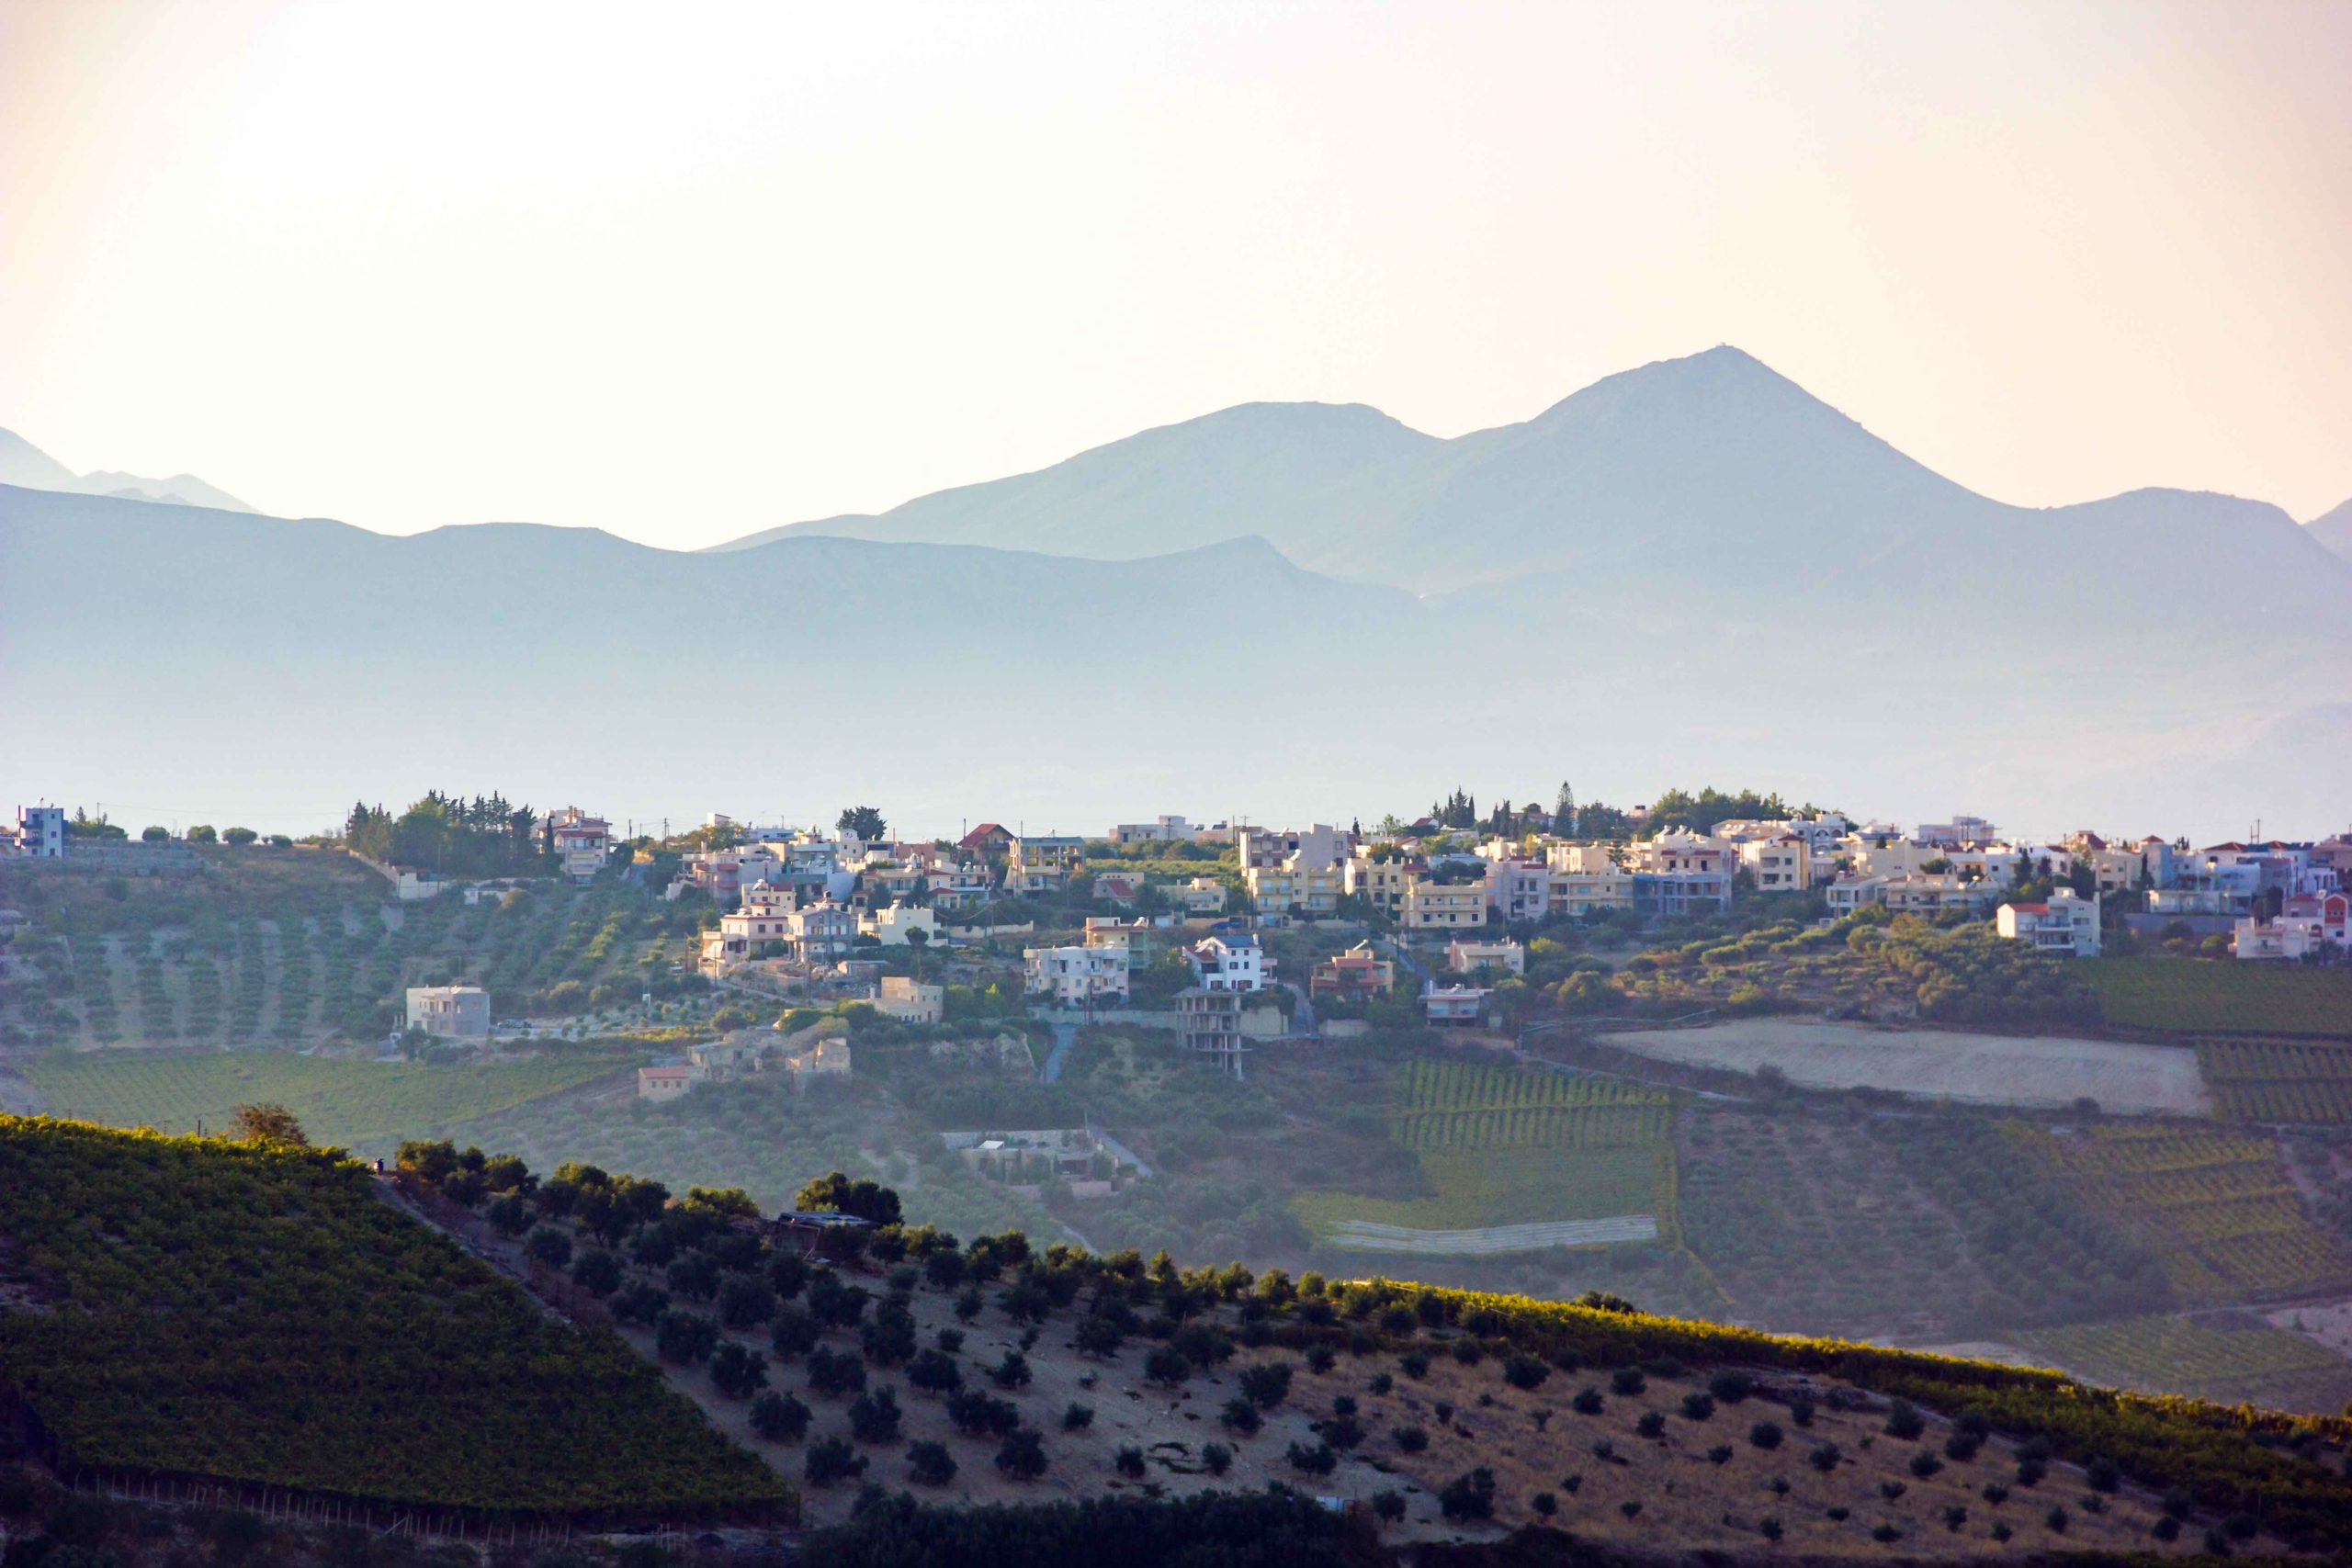 Canva---Vineyards-&-Olive-Trees-Near-The-Heraklion,-Capital-City-of-Crete,-Greece